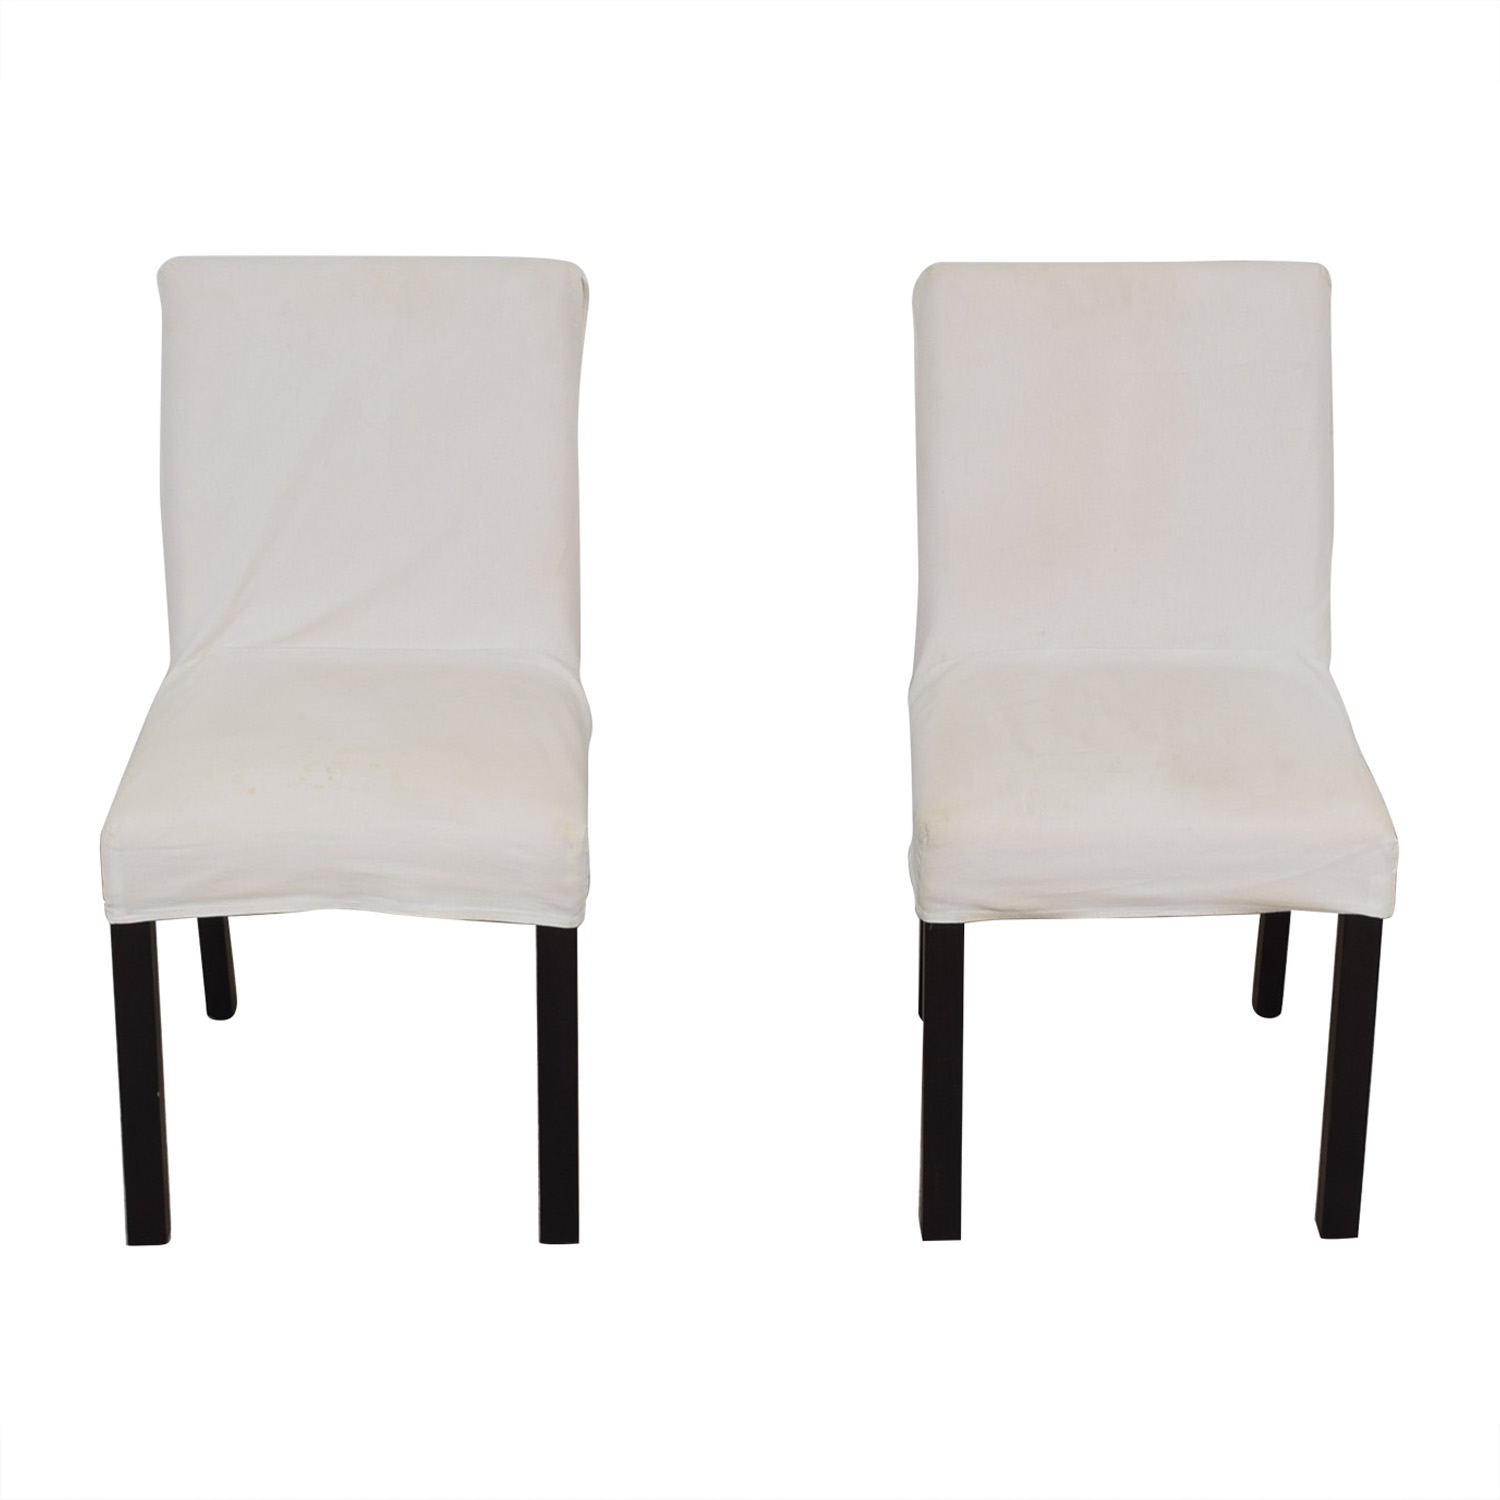 shop Crate & Barrel White Chairs Crate & Barrel Chairs